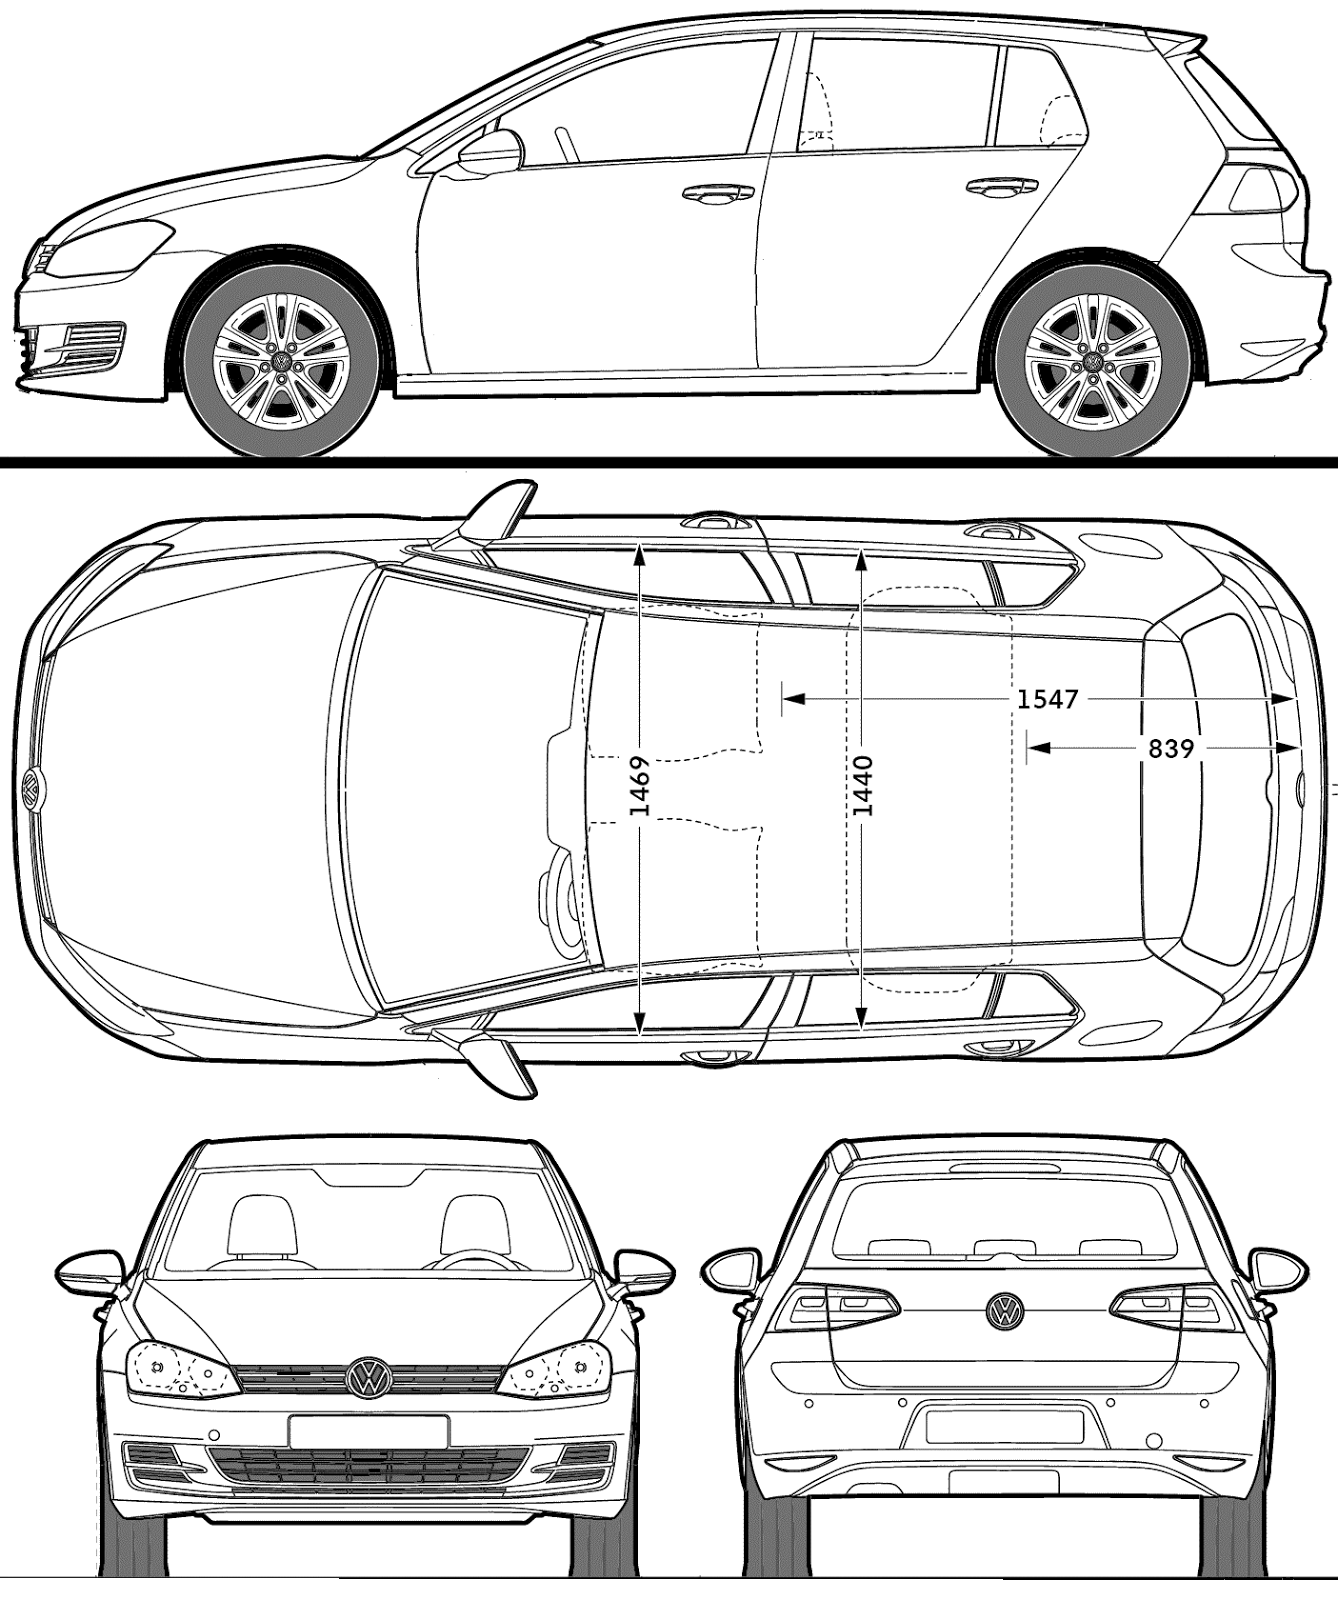 Volkswagen golf 2013 blueprint download free blueprint for 3d modeling volkswagen golf blueprint malvernweather Image collections